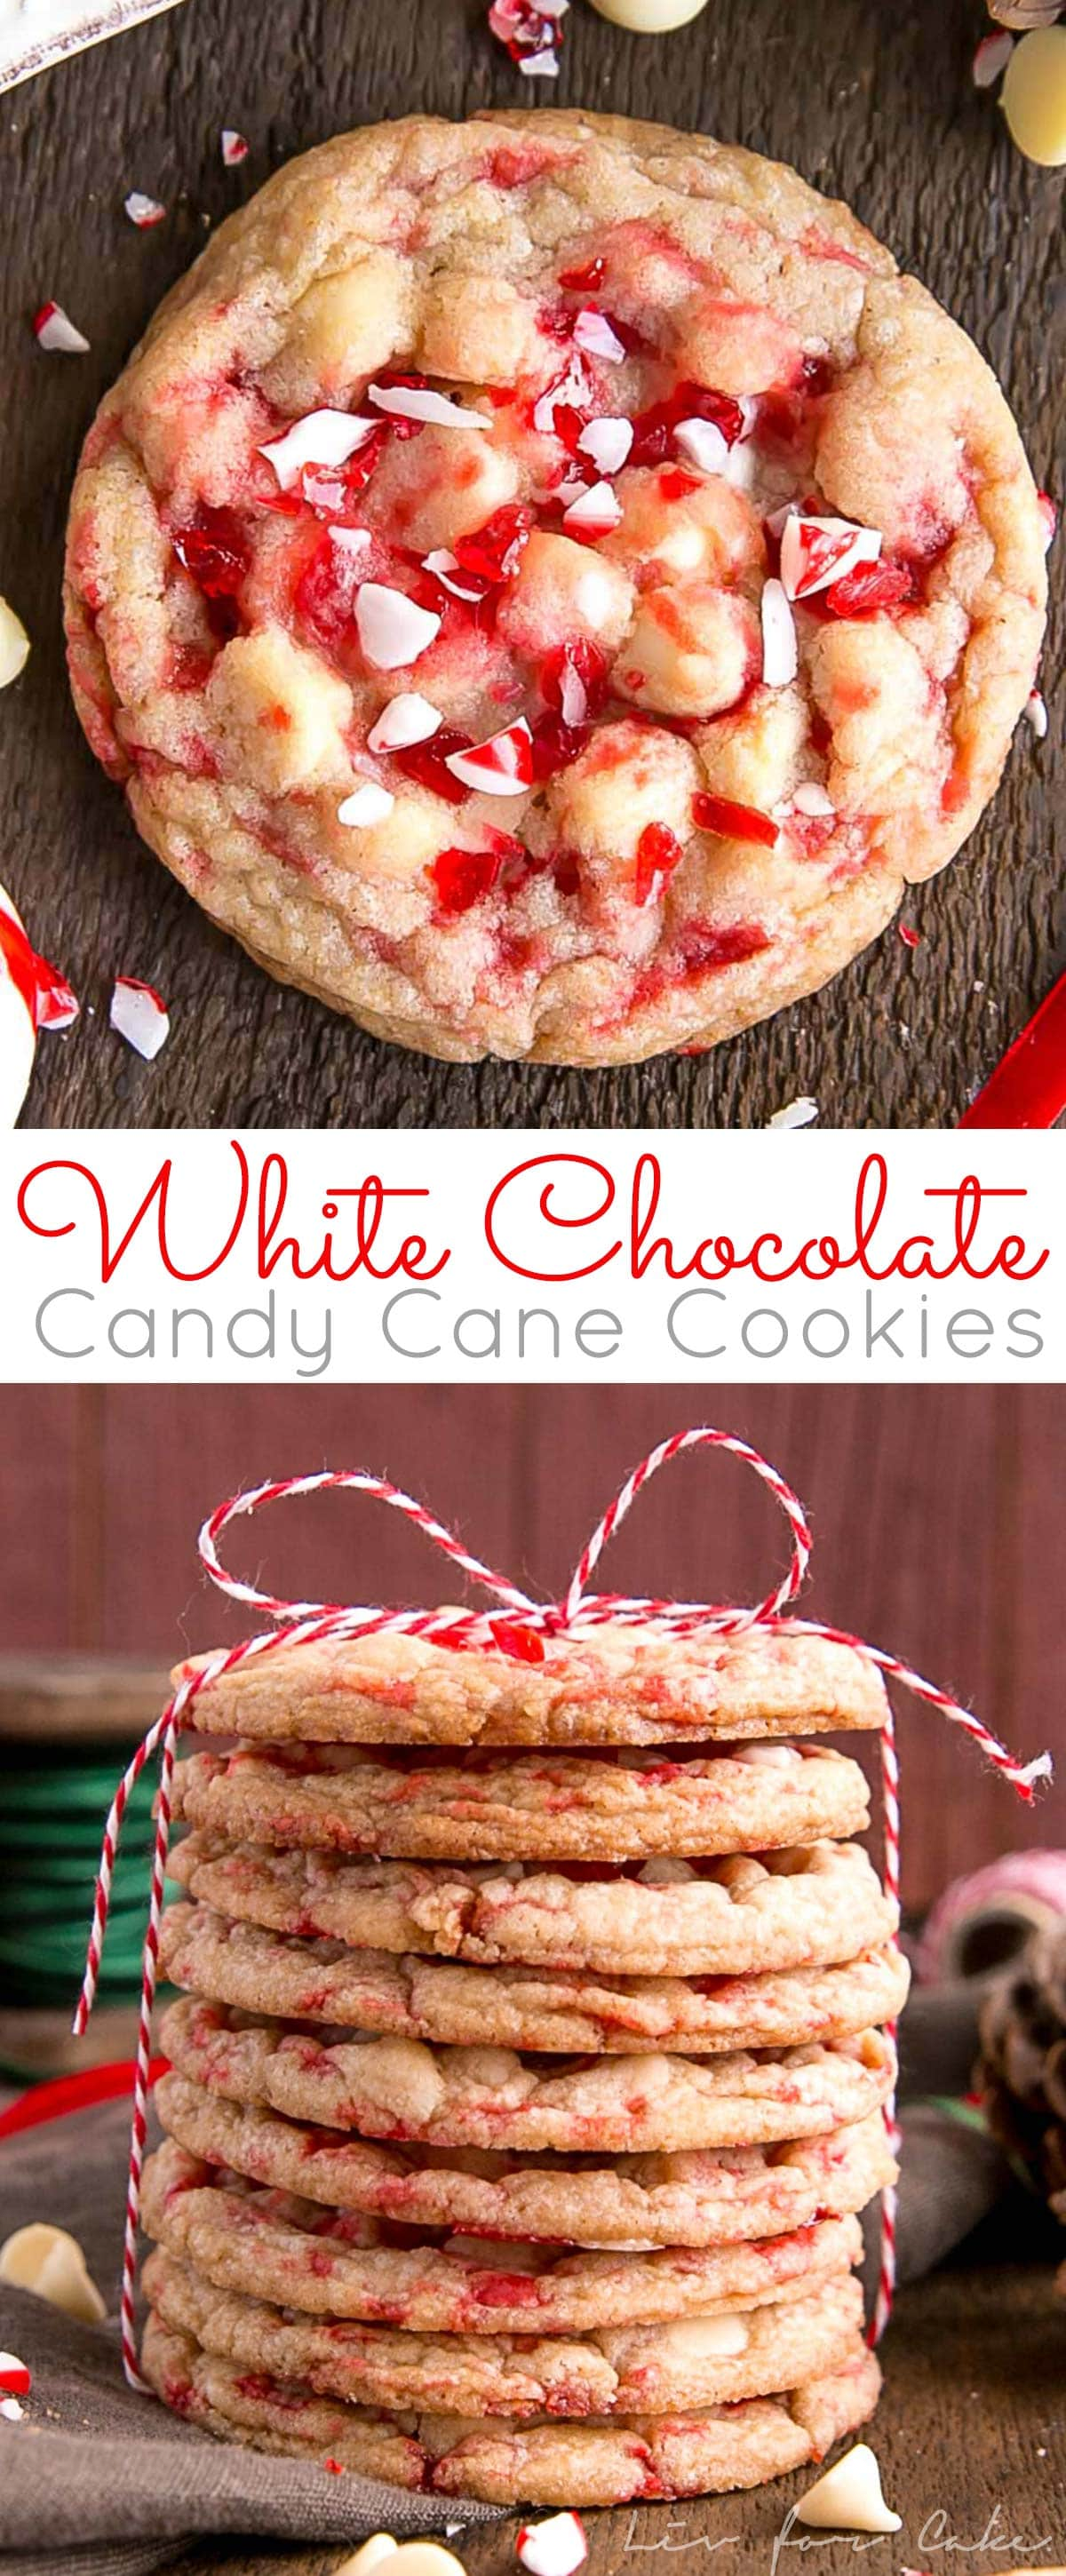 These White Chocolate Candy Cane Cookies are crispy, chewy, and delicious. The perfect sweet treat for the holidays! | livforcake.com